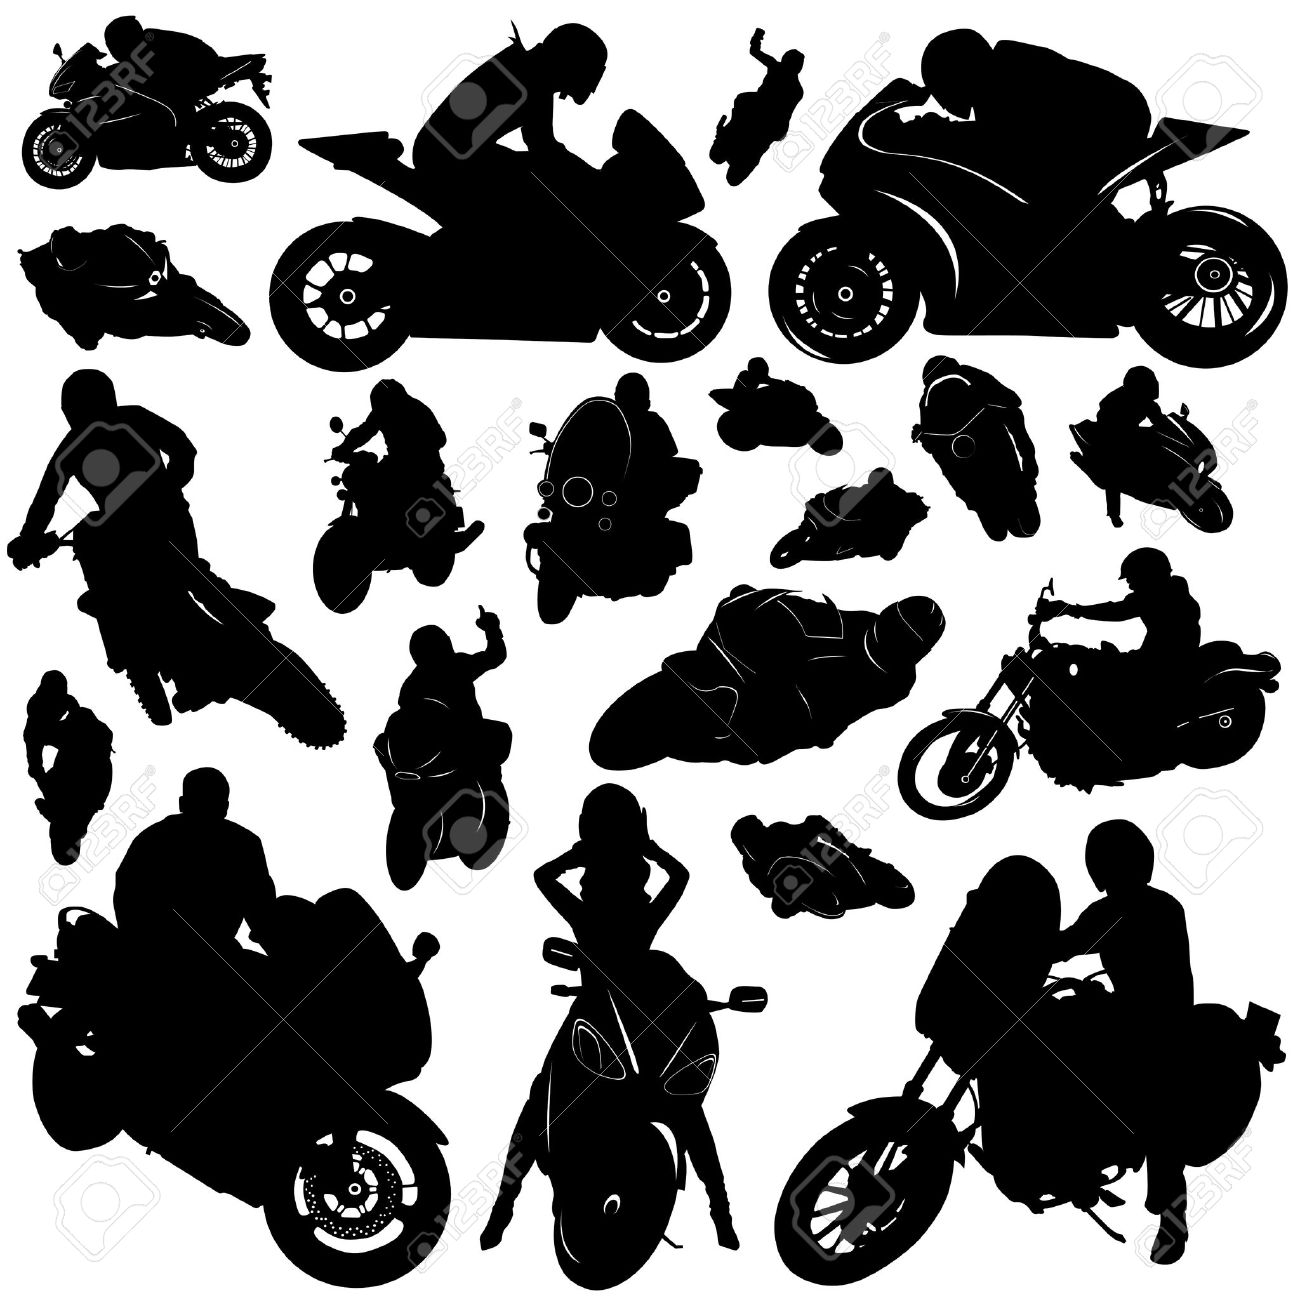 Free Motorcycle Silhouette Cliparts, Download Free Clip Art, Free ... picture transparent download